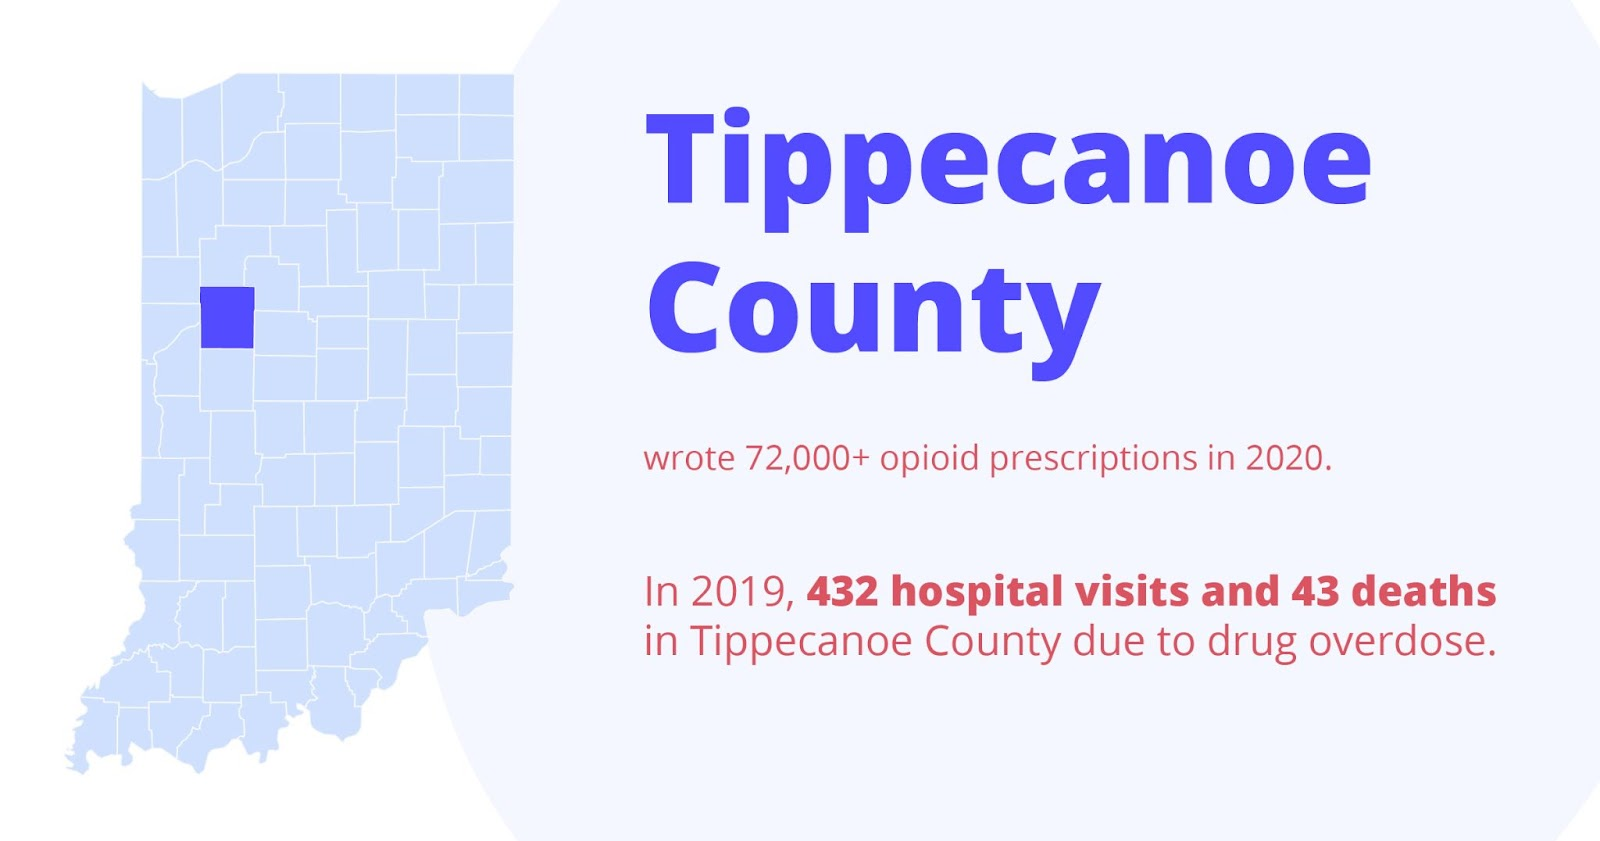 Tippecanoe county wrote 72,000+ opioid prescriptions in 2020. In 2019, 432 hospital visits and 43 deaths in tippecanoe county due to overdose.